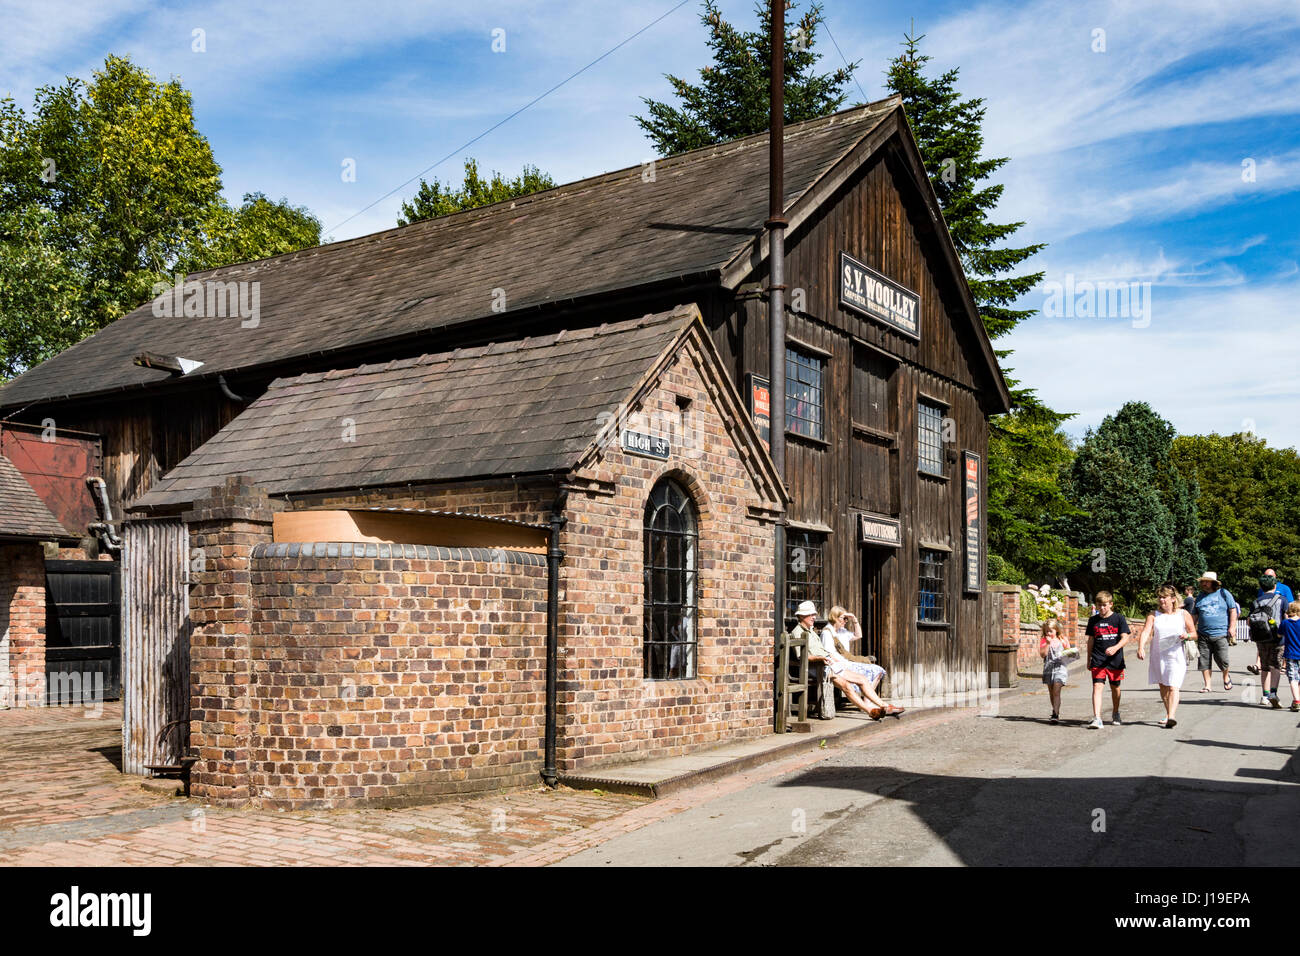 The Saw Mill and Undertaker's workshop at the Blists Hill Victorian Town, near Madeley, Shropshire, England, - Stock Image